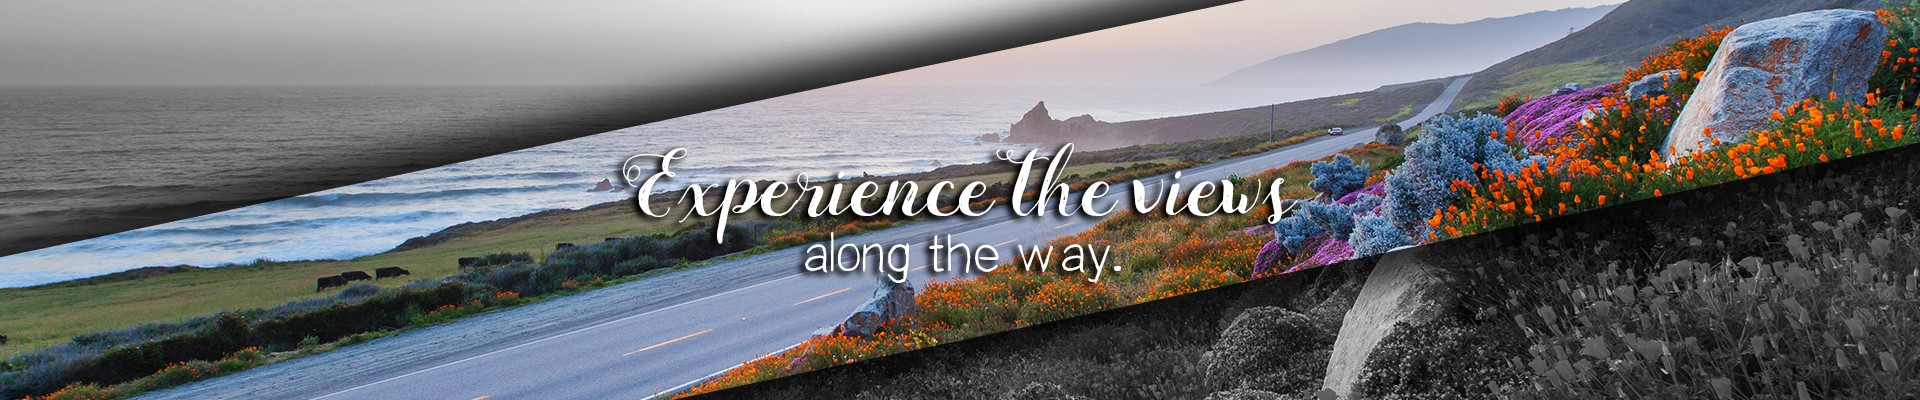 Experience the views along the way Highway 1.